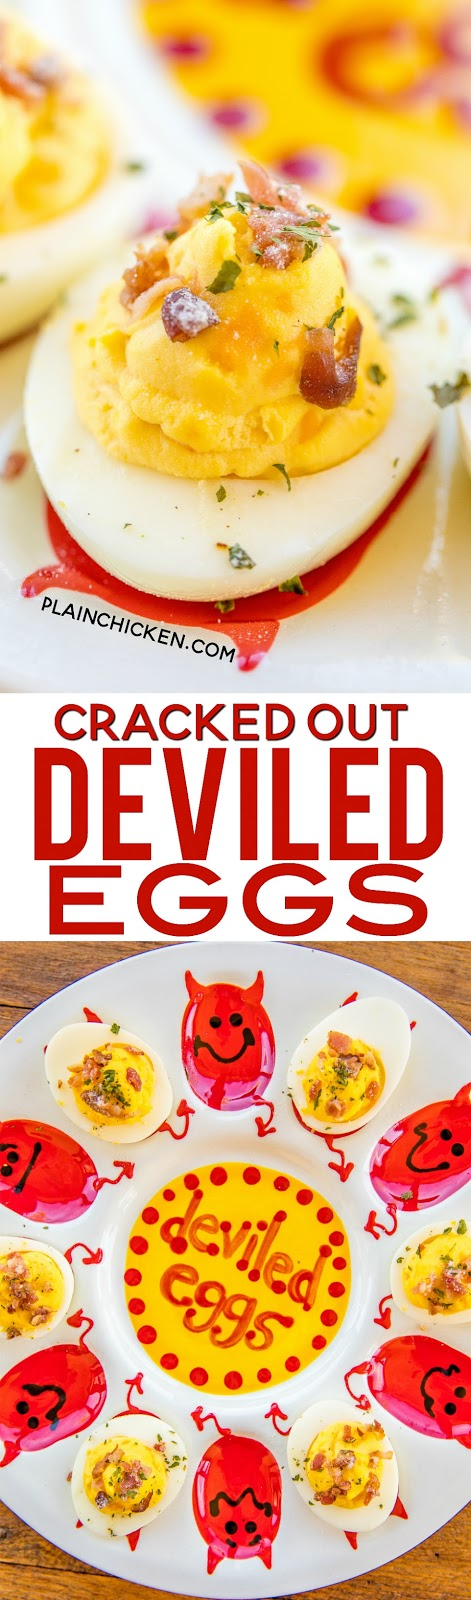 Cracked Out Deviled Eggs - deviled eggs loaded with cheddar, bacon and ranch. These things are dangerously DELICIOUS!!! Can make ahead and refrigerate overnight. Hard boiled eggs, mayonnaise, ranch dressing, cheddar cheese, vinegar, salt, mustard, pepper, onion powder and bacon. SO good!! #appetizer #eggs #hardboiledeggs #bacon